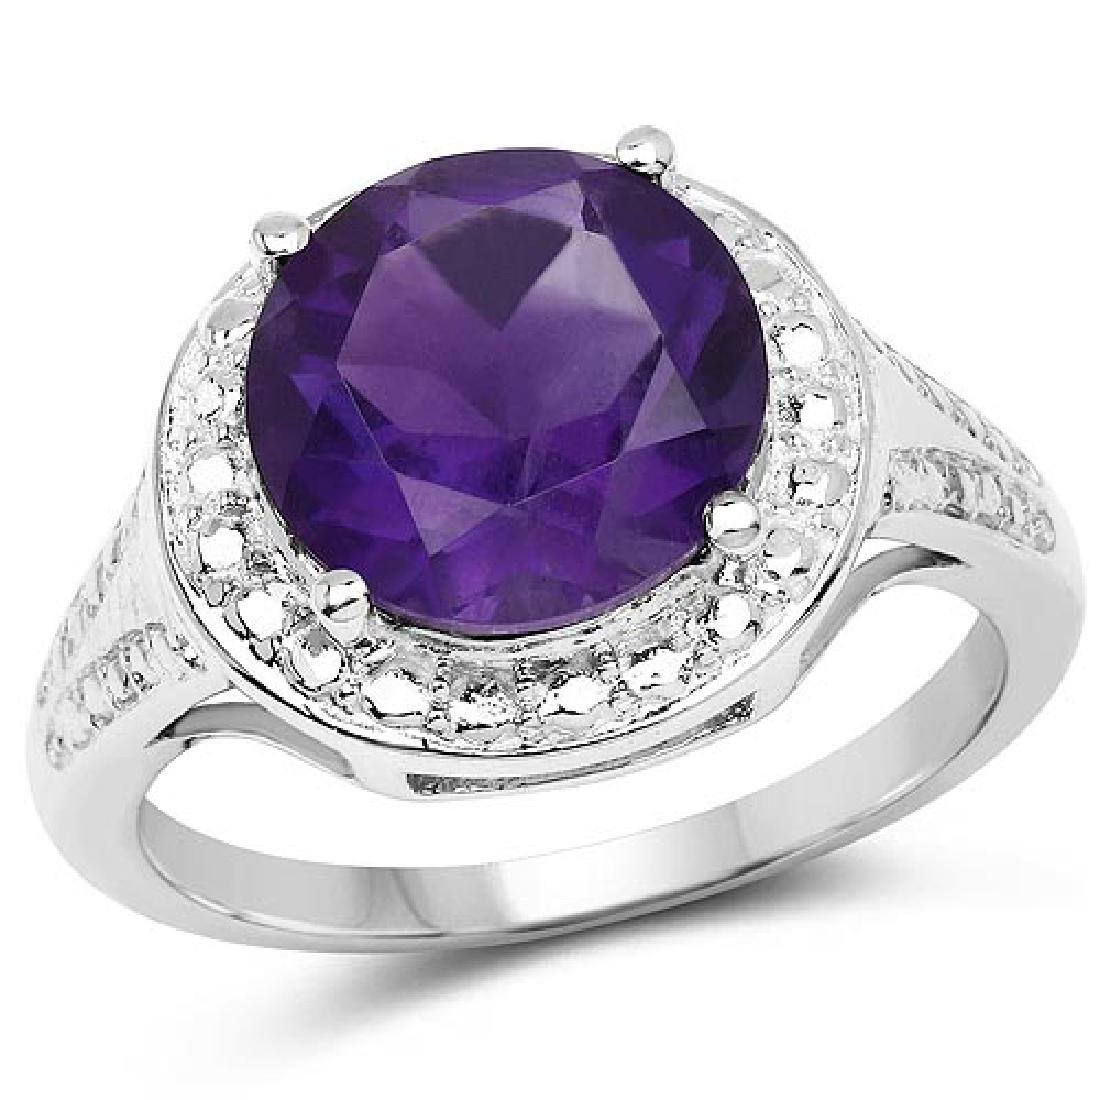 3.30 Carat Genuine Amethyst .925 Sterling Silver Ring